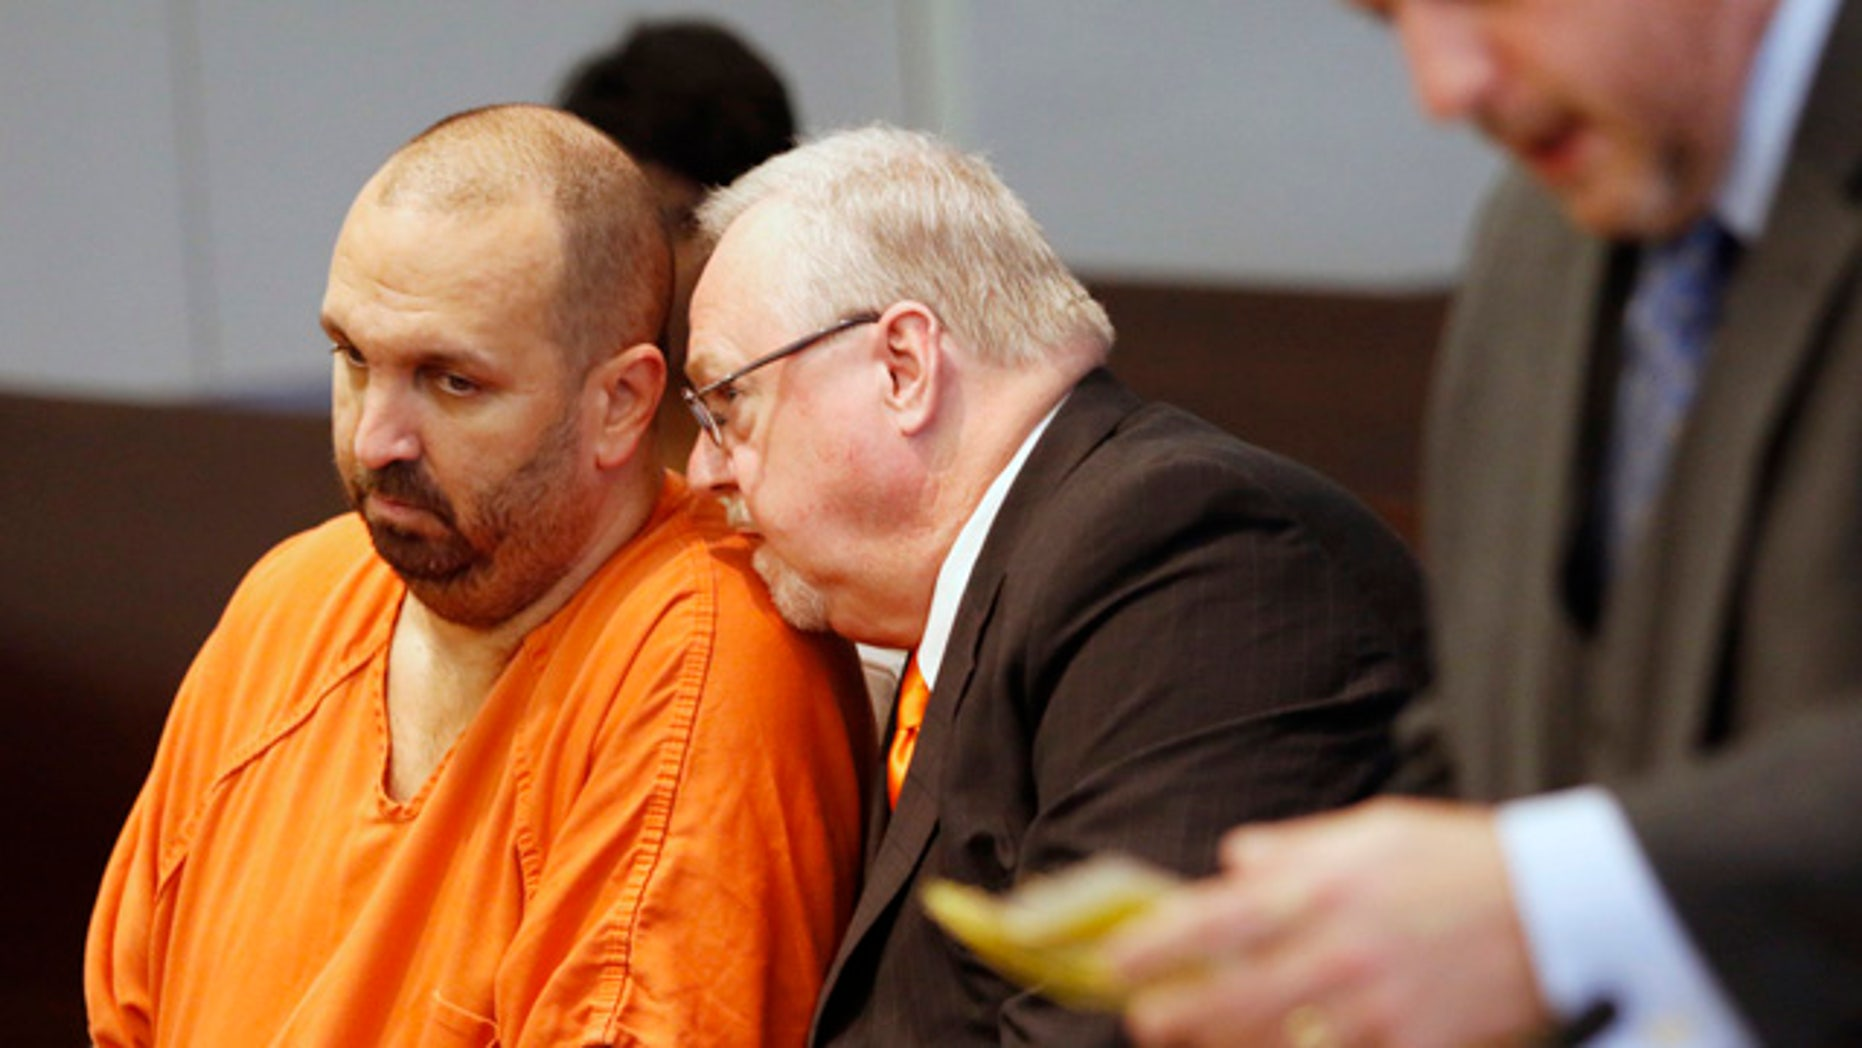 April 6, 2015: Murder defendant Craig Stephen Hicks, 46, left, listens to his co-defense counsel Terry Alford, center, during a death penalty hearing for Hicks in Durham Criminal Superior Court in Durham, N.C.  (AP Photo/The News & Observer, Harry Lynch)